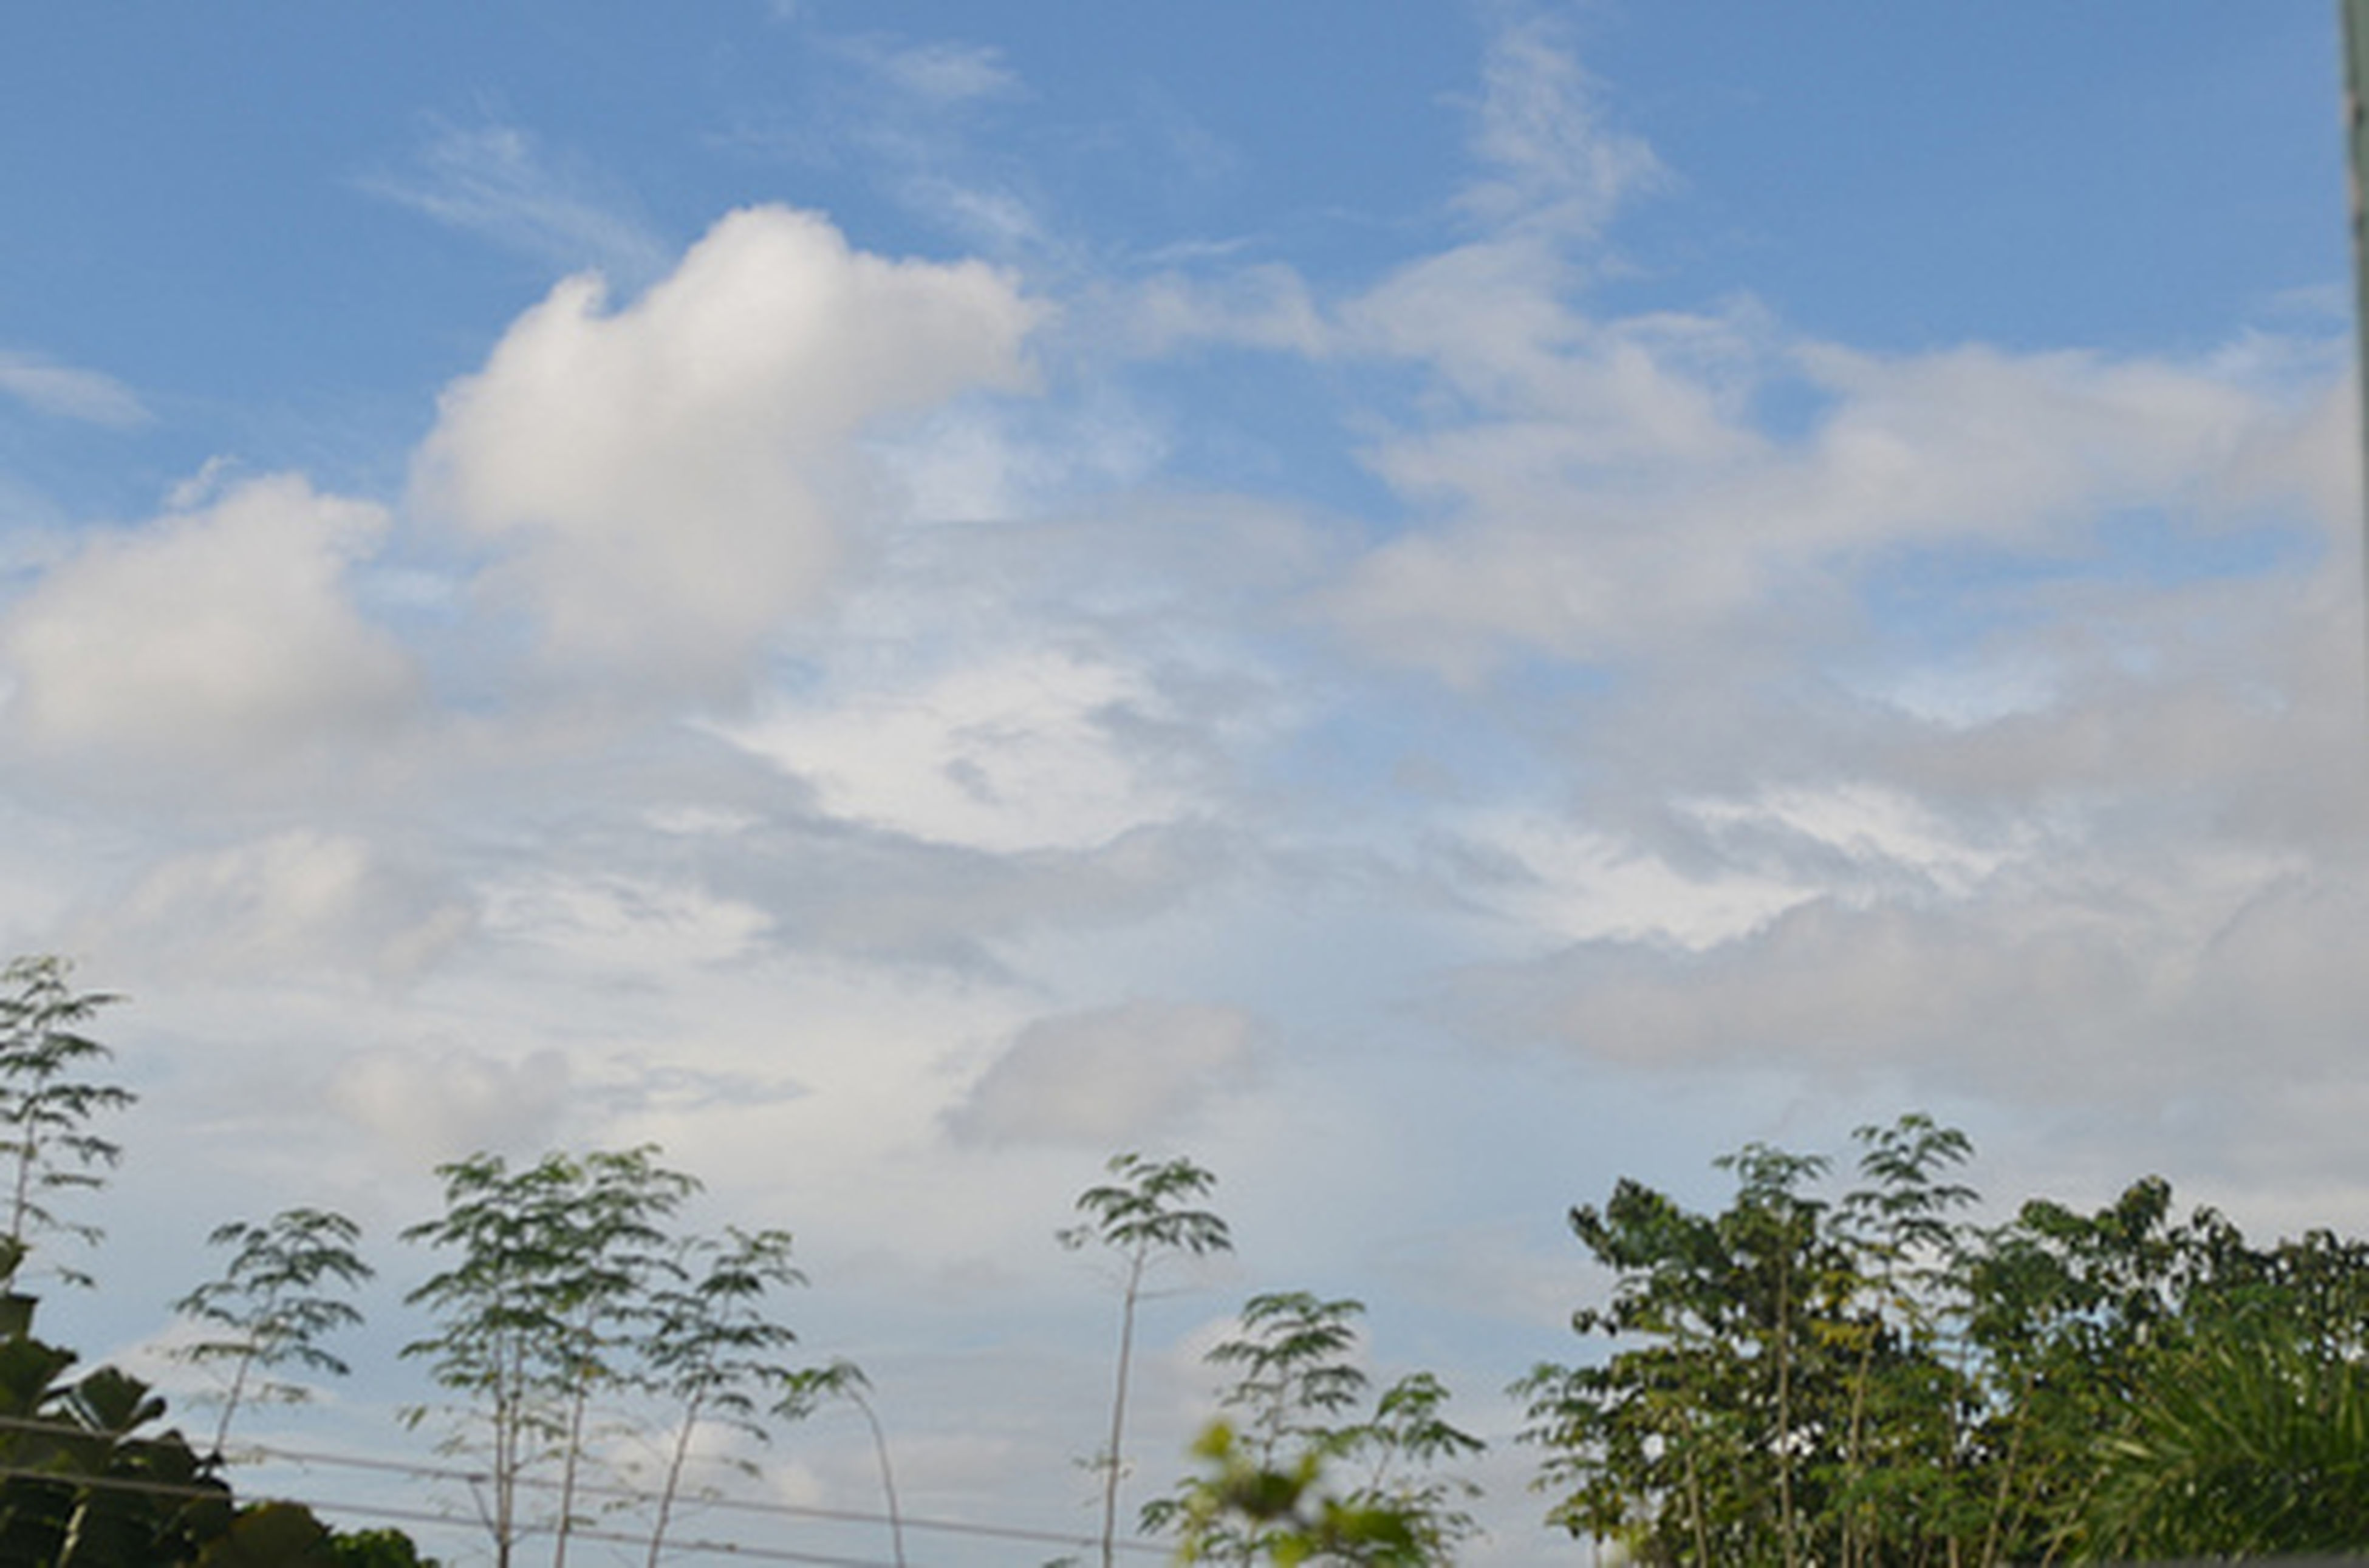 sky, tree, cloud - sky, low angle view, cloudy, tranquility, cloud, beauty in nature, nature, scenics, growth, blue, tranquil scene, day, outdoors, no people, palm tree, idyllic, high section, sunlight